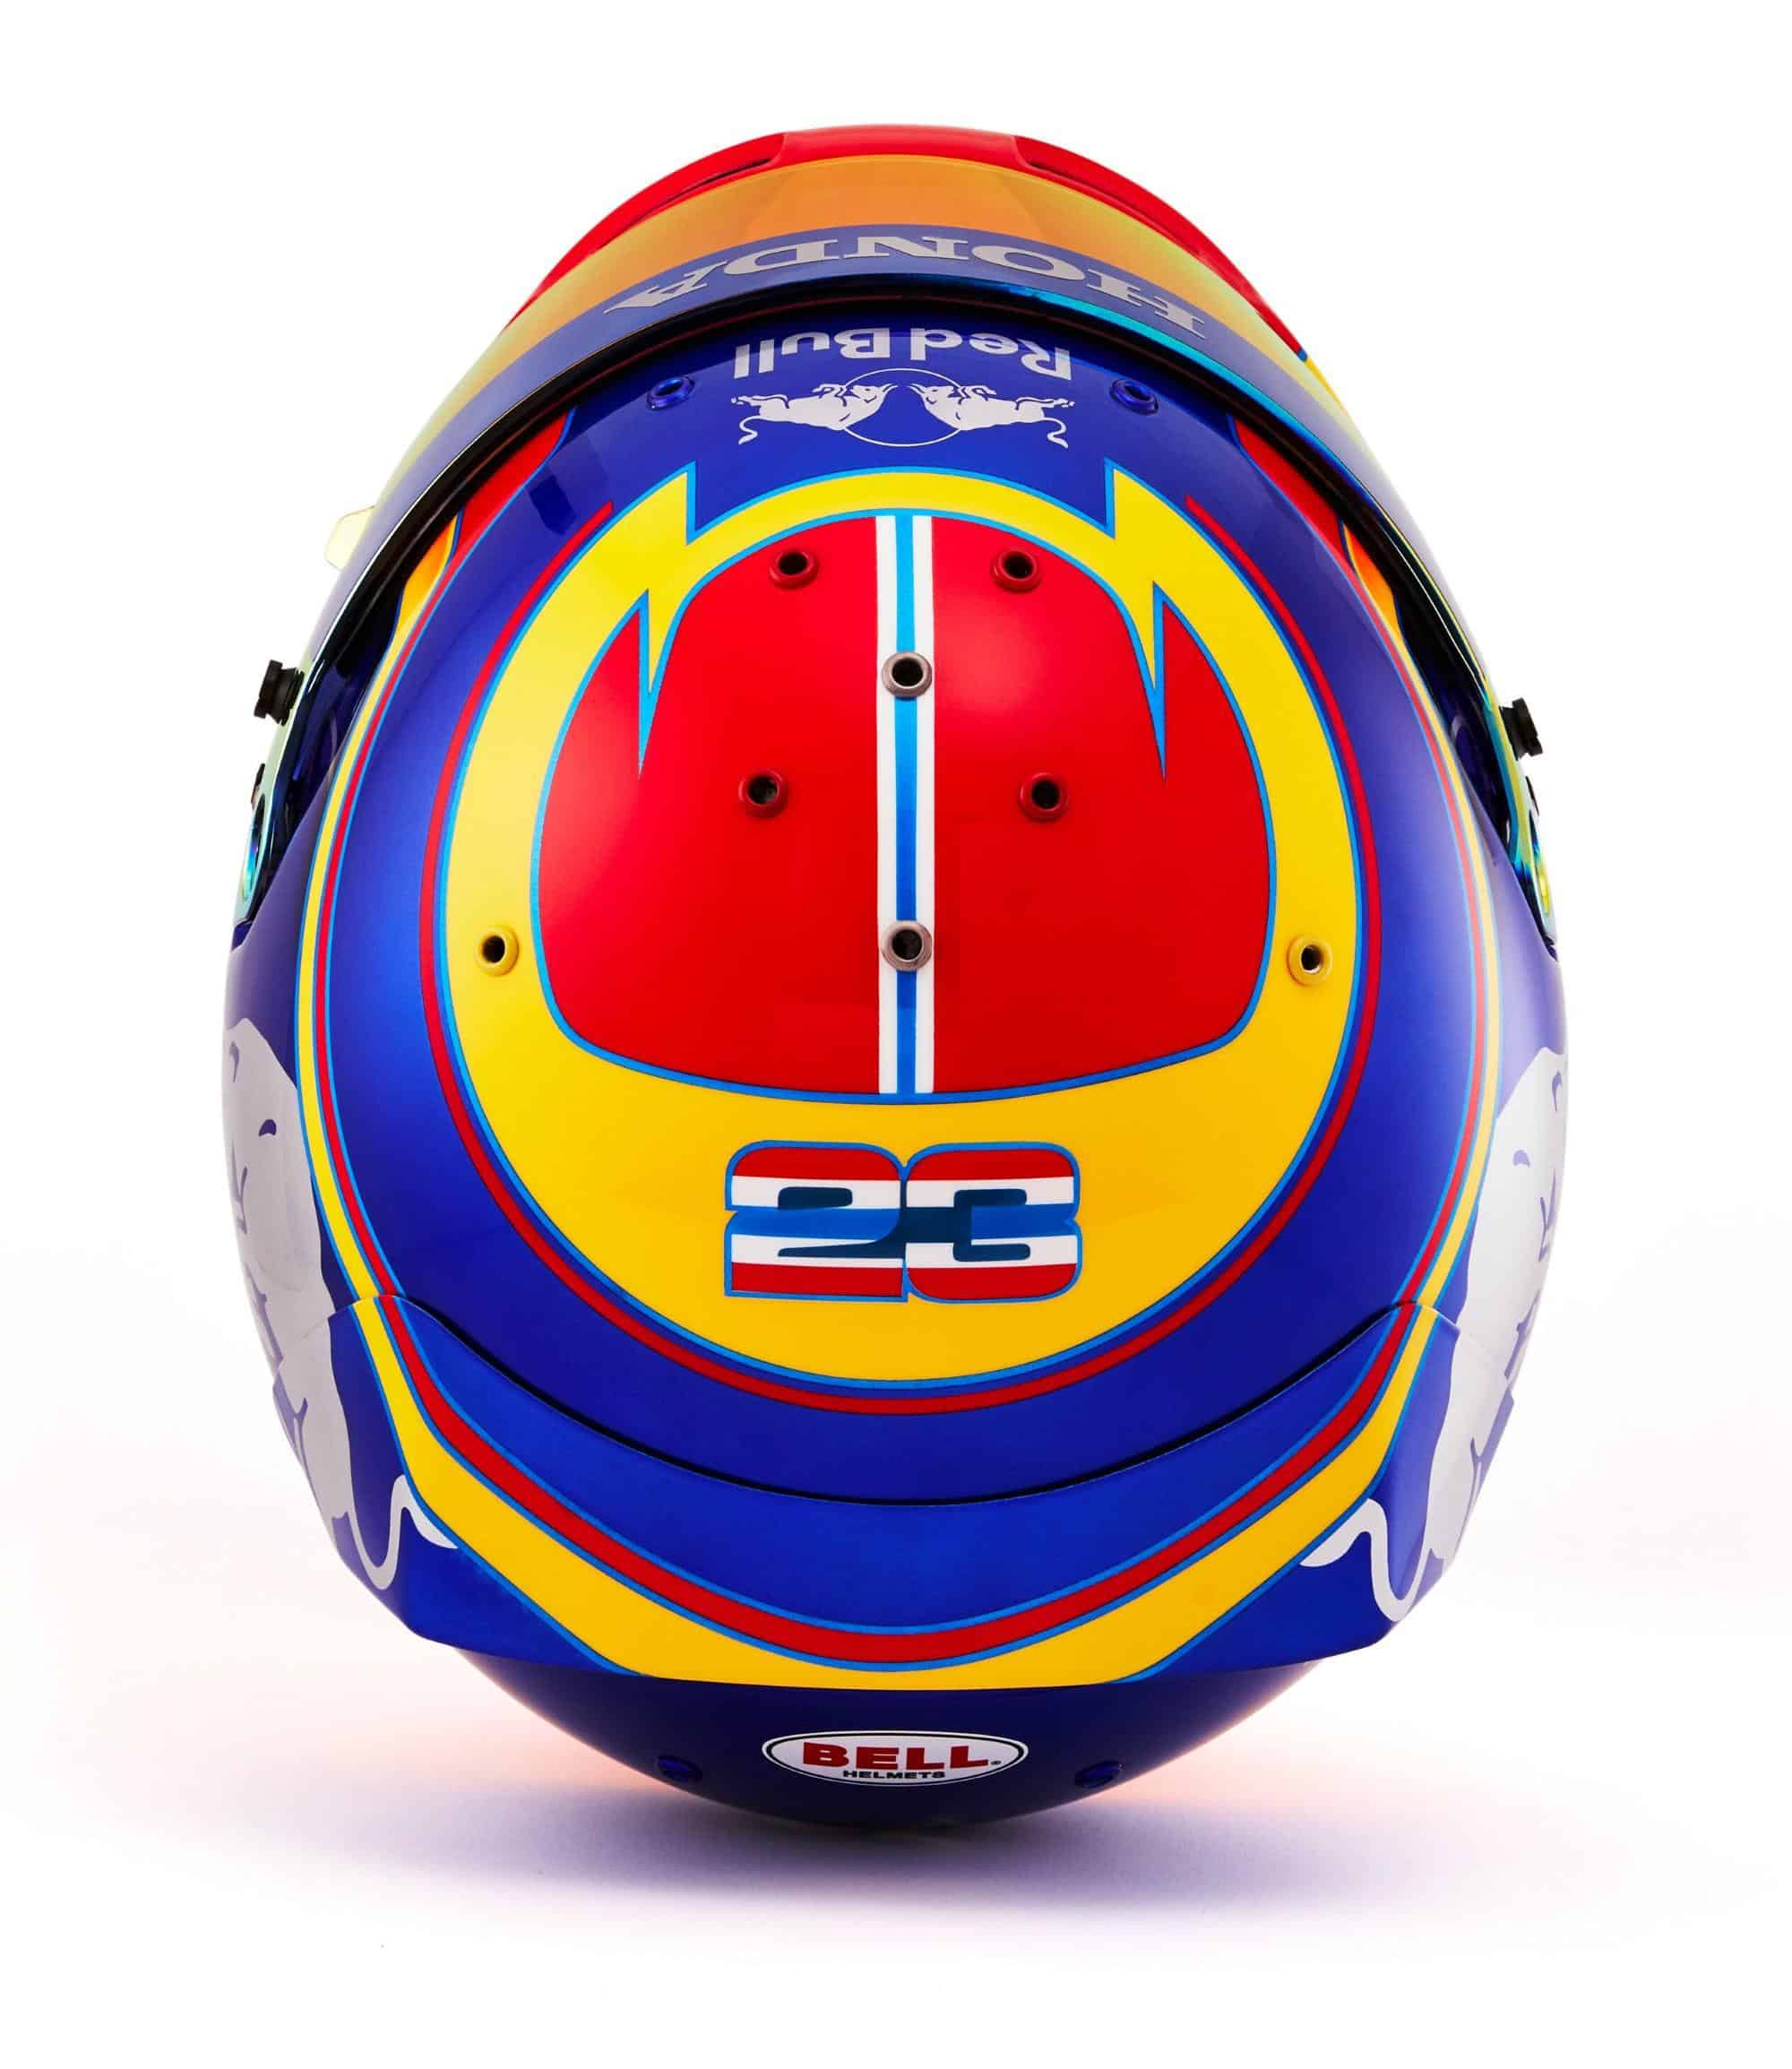 2019 F1 Alexander Albon helmet Toro Rosso Honda top Photo Red Bull Edited by MAXF1net